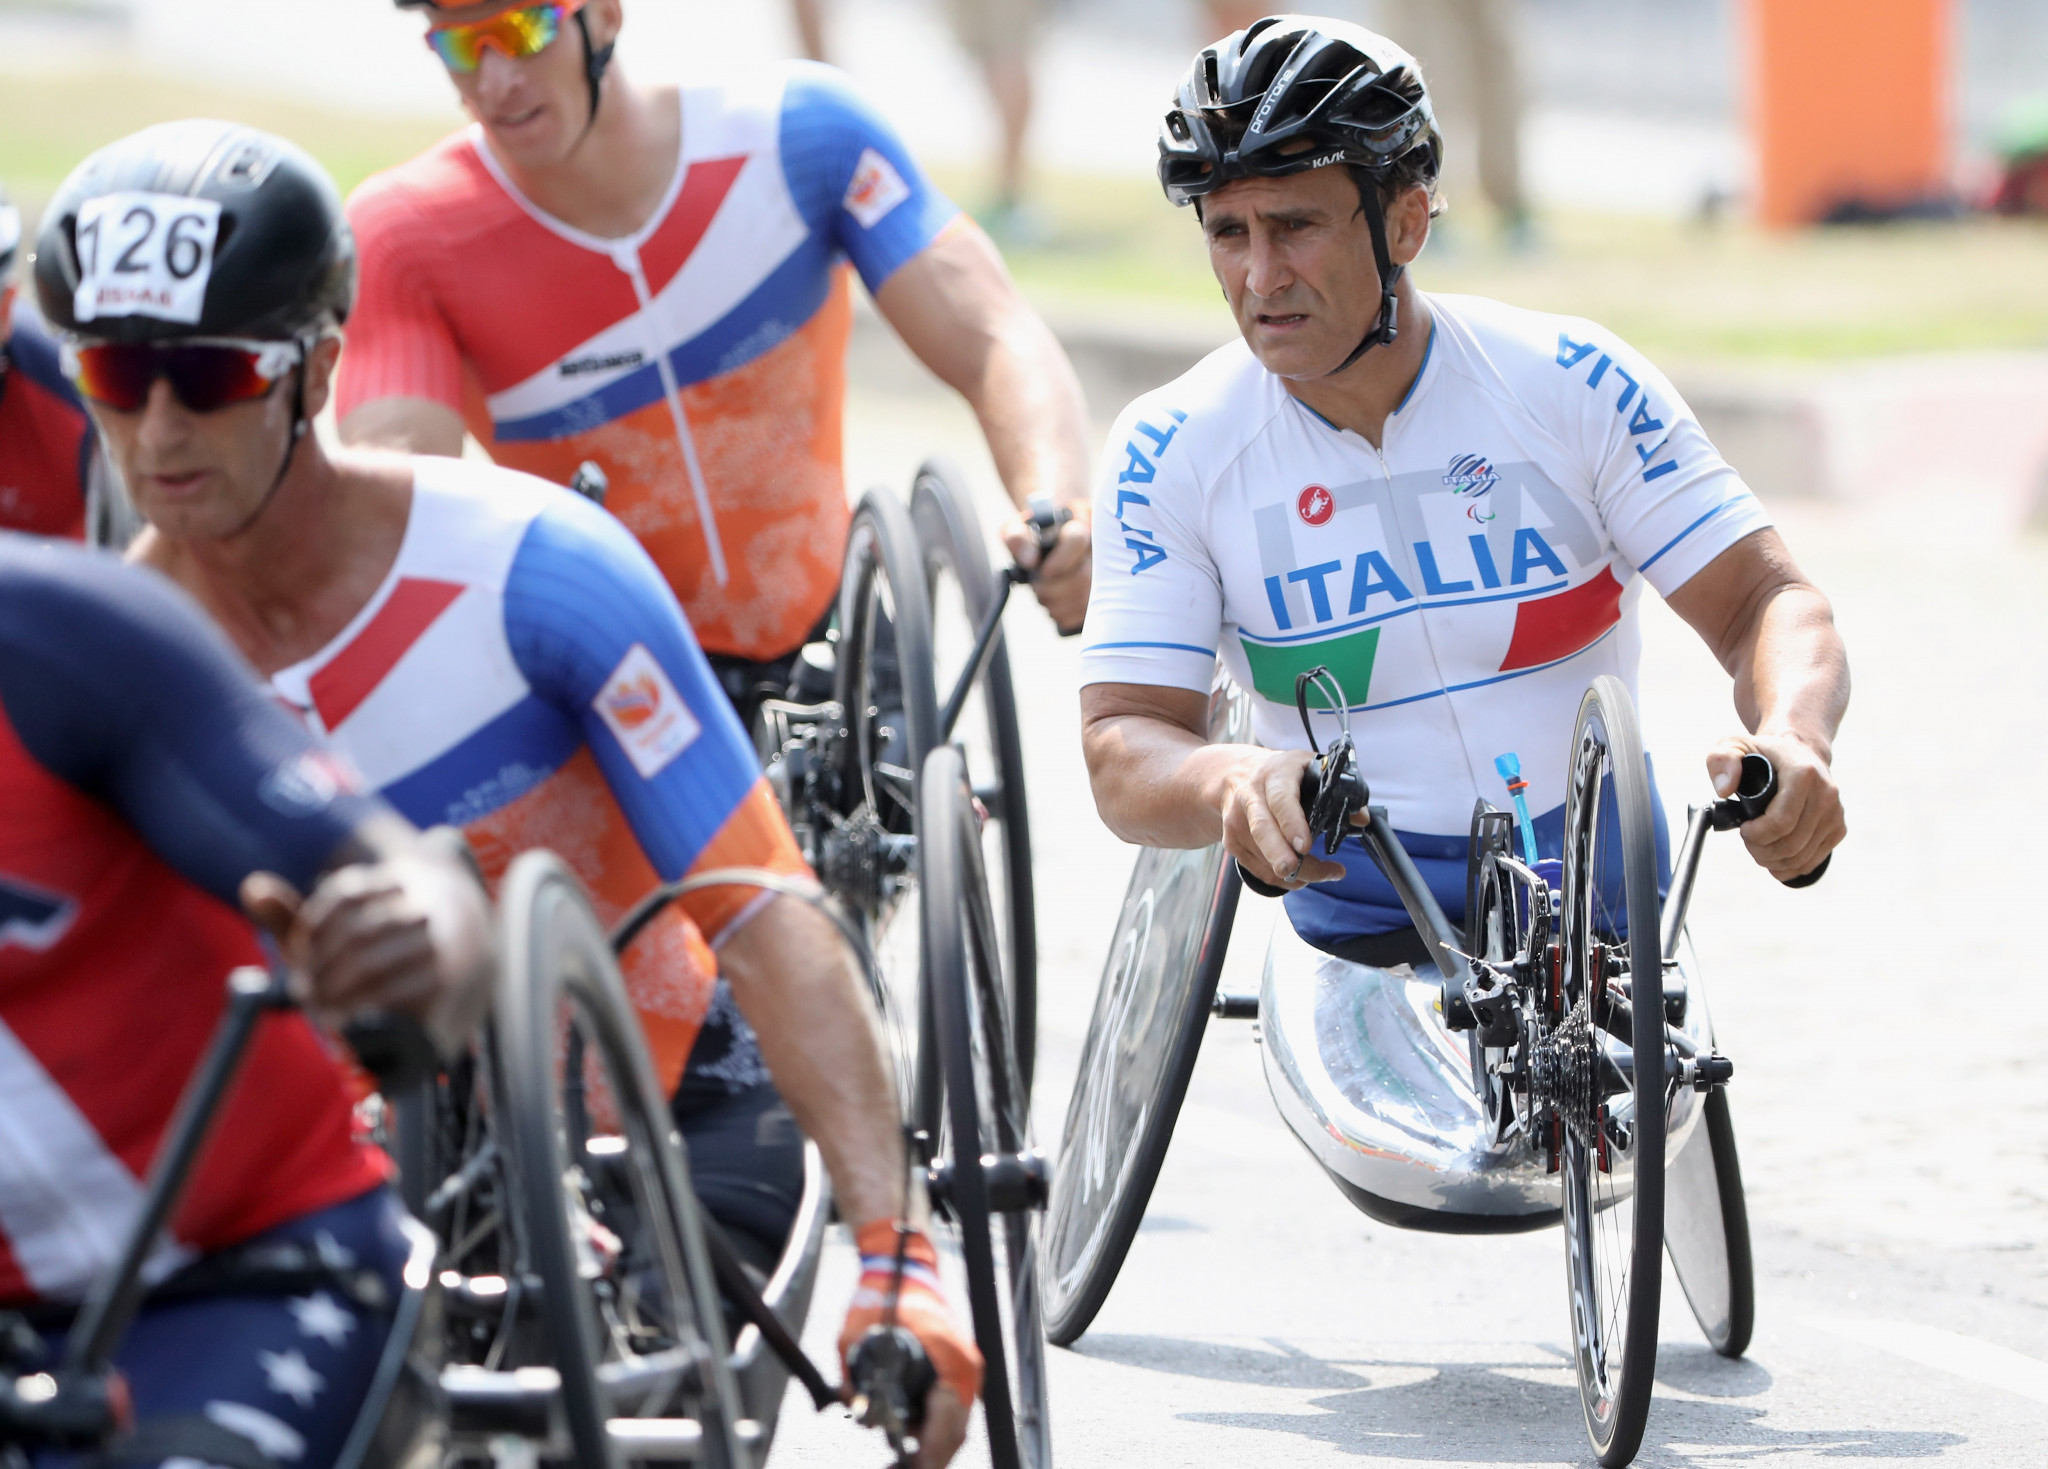 Zanardi transferred to hospital closer to home after condition stabilises